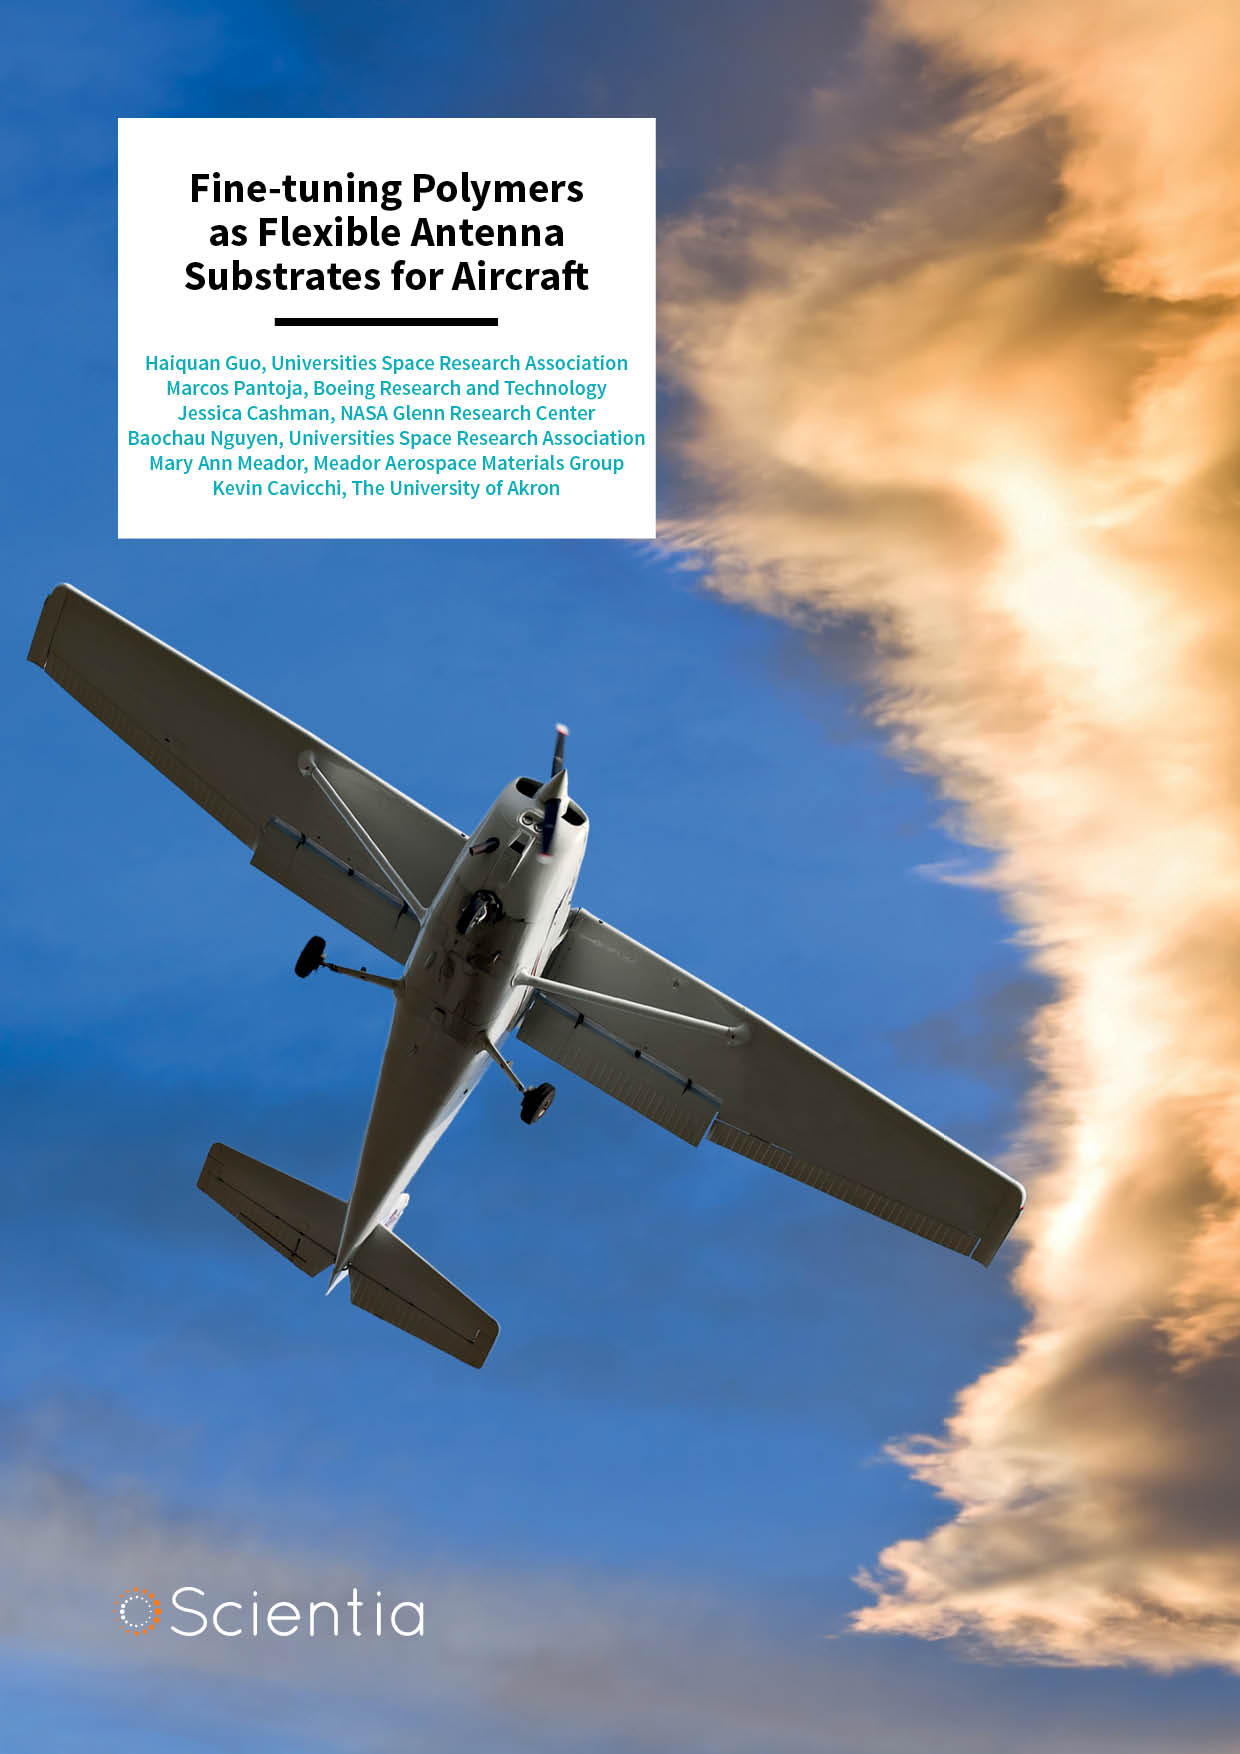 Fine-tuning Polymers as Flexible Antenna Substrates for Aircraft